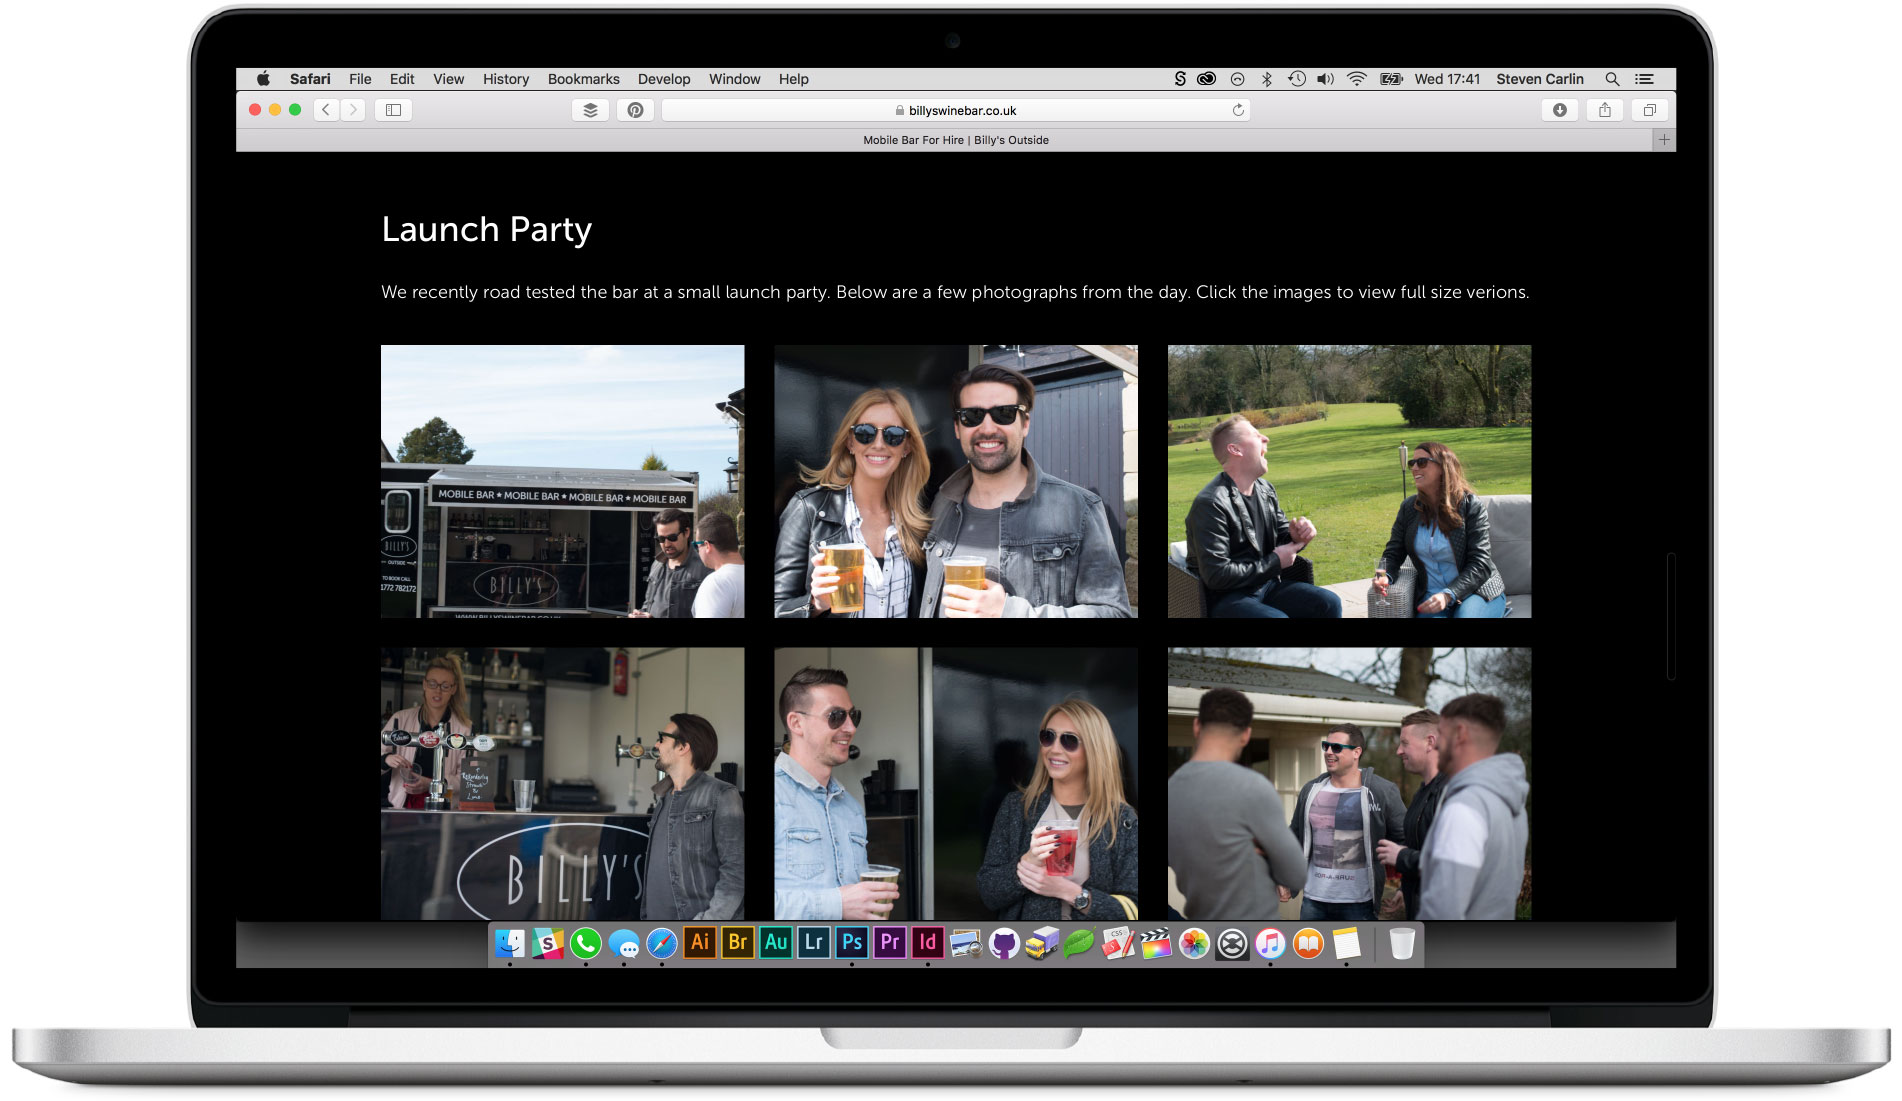 Launch party gallery section.